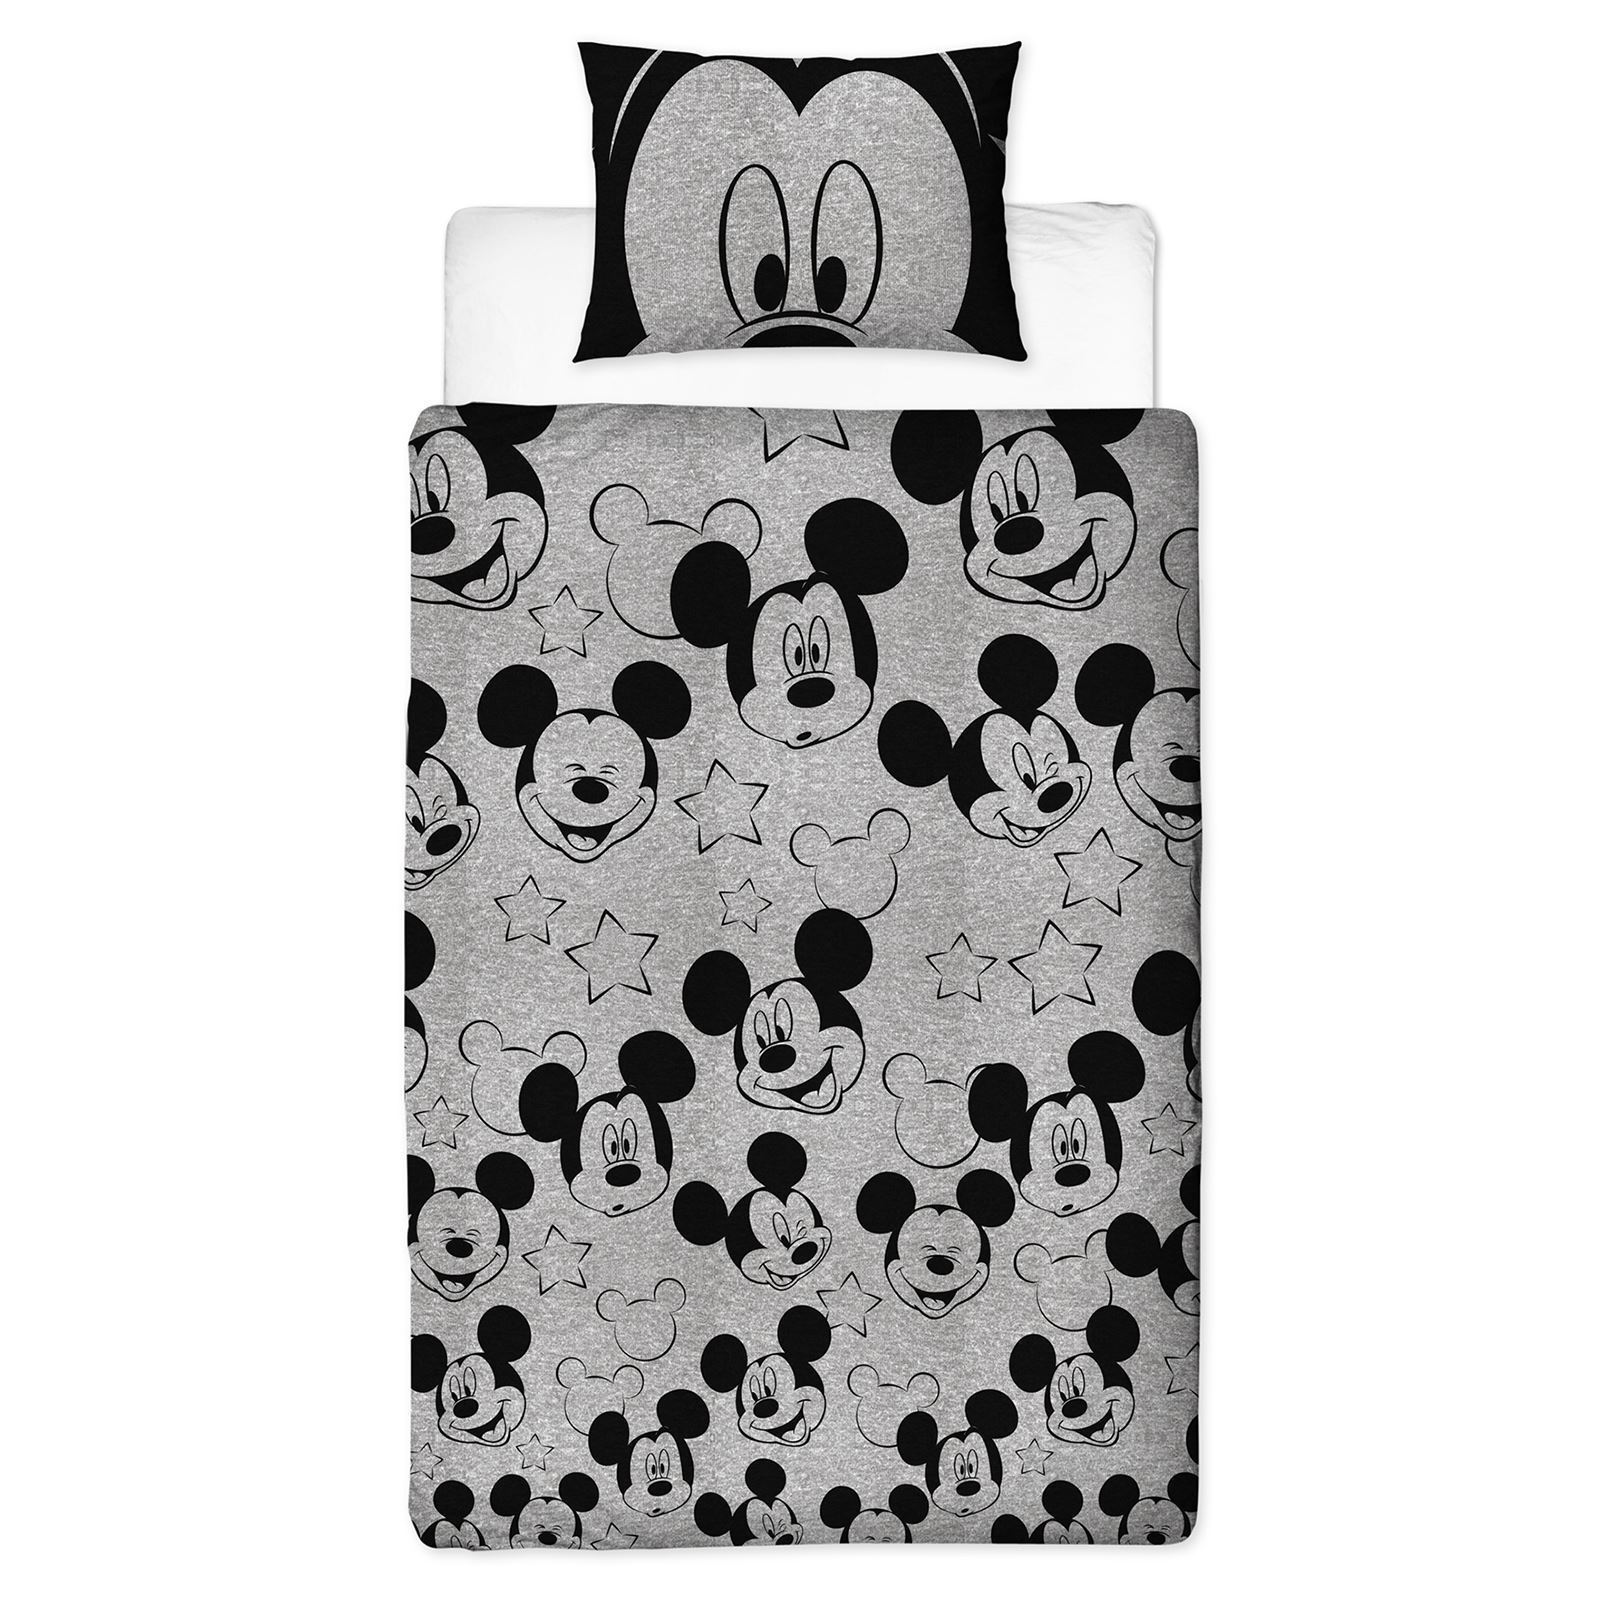 Disney-Mickey-Minnie-mouse-fundas-nordicas-SINGLE-doble-Ropa-De-Cama-Reversible miniatura 9